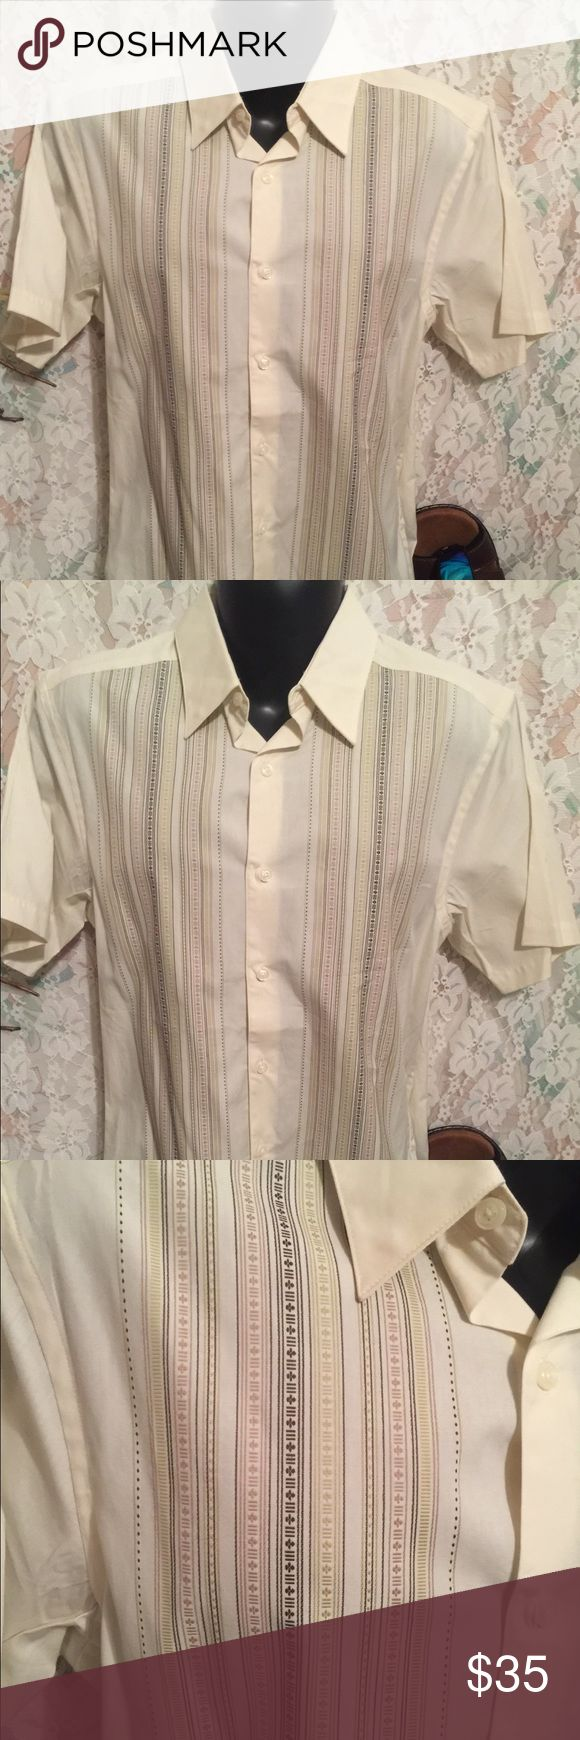 "Geoffrey Beene men's short sleeve shirt Comfortable and stylish men's dress shirt. Measures 21"" underarm to underarm and 26"" shoulder to hem.   Geoffrey Beene men's short sleeve shirt green shades in lines Geoffrey Beene Shirts Casual Button Down Shirts"